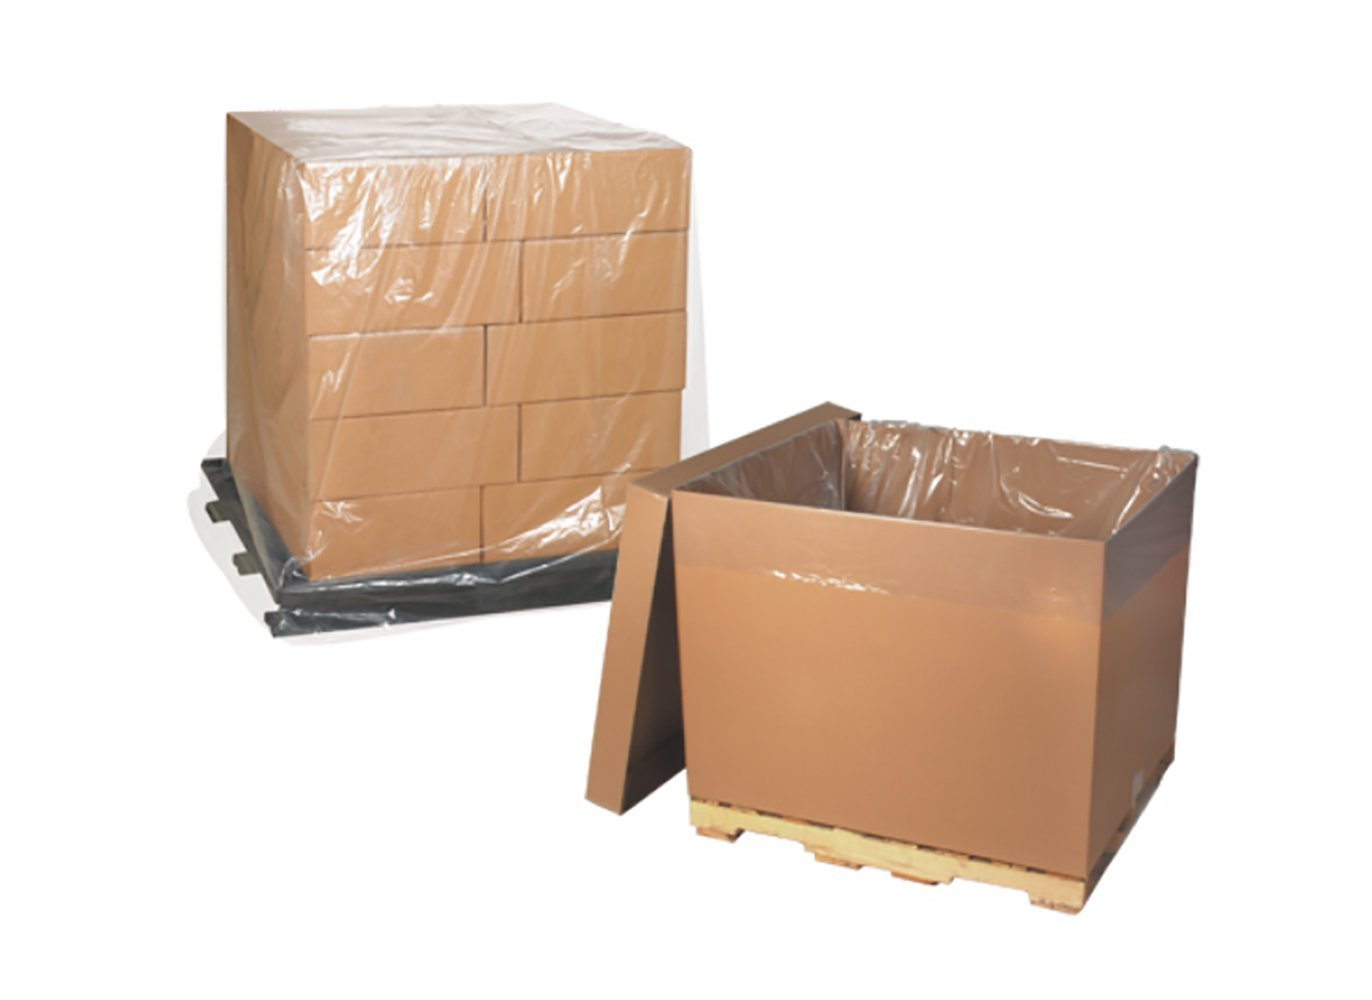 """RetailSource PC542x1 54 x 44 x 72"""" - 4 Mil Clear Pallet Covers, 7"""" Height, 54.5"""" Length (Pack of 25)"""